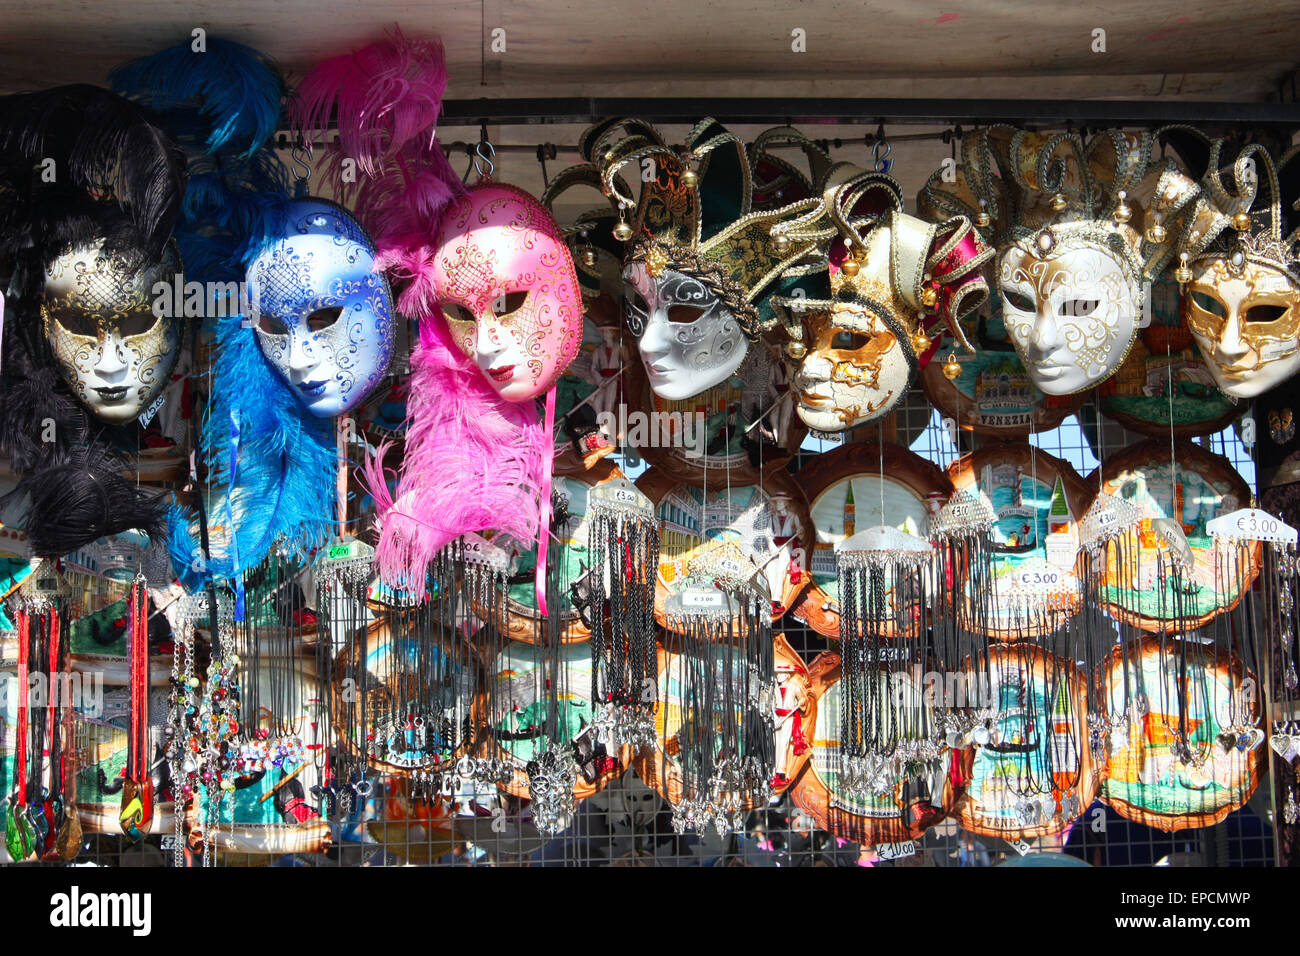 Decorative masks and souvenirs in Venice, ItalyStock Photo